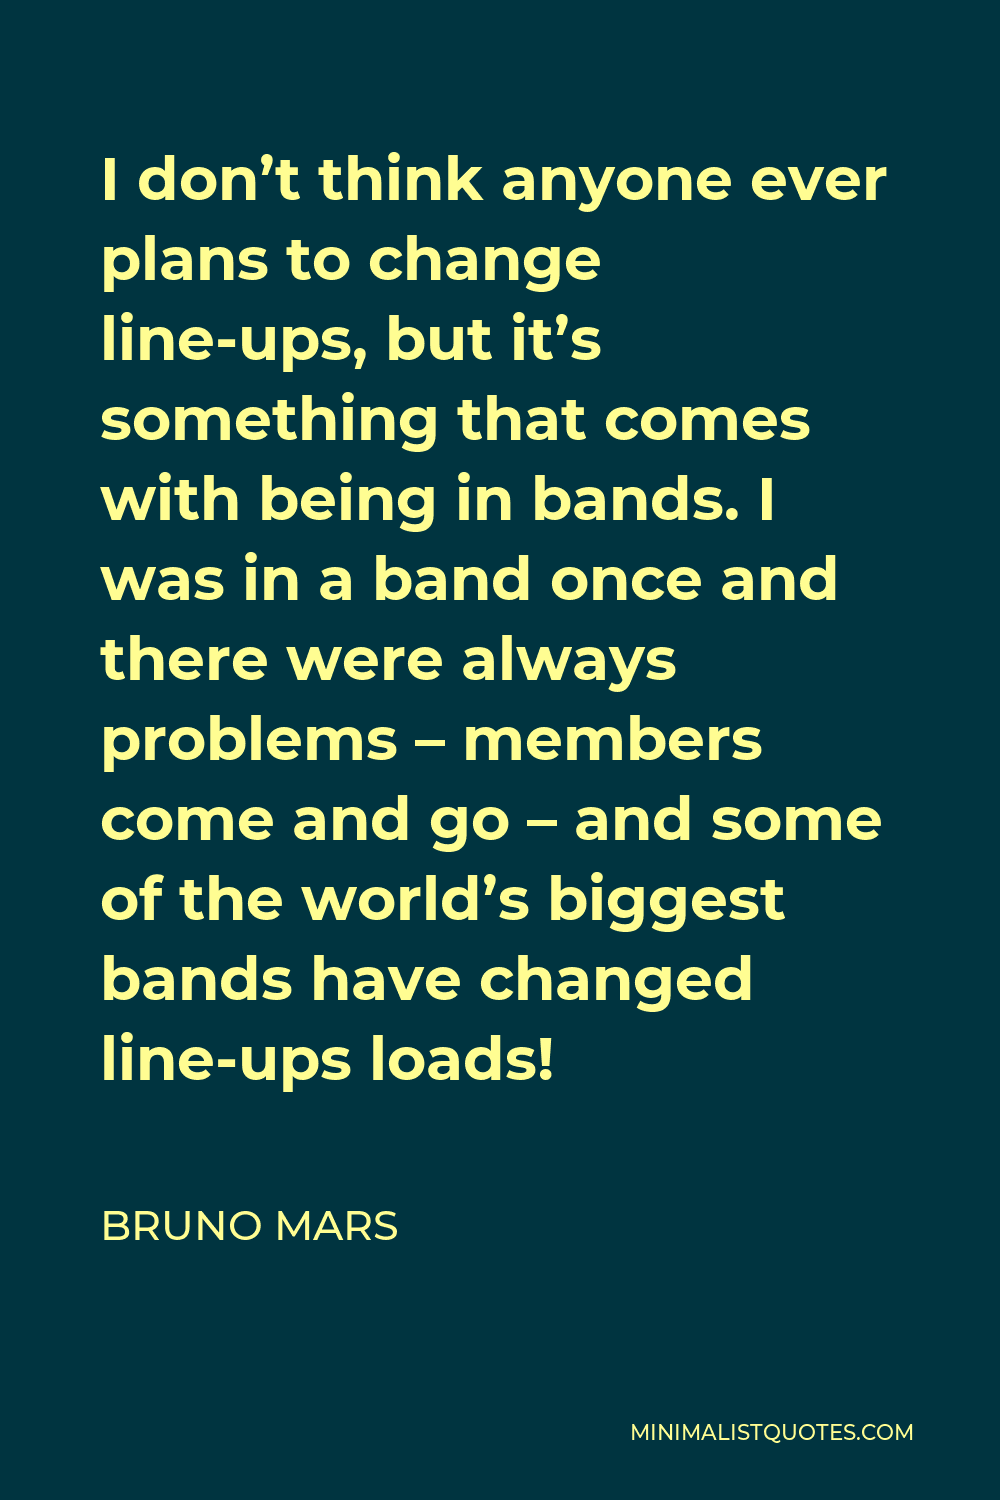 Bruno Mars Quote - I don't think anyone ever plans to change line-ups, but it's something that comes with being in bands. I was in a band once and there were always problems – members come and go – and some of the world's biggest bands have changed line-ups loads!